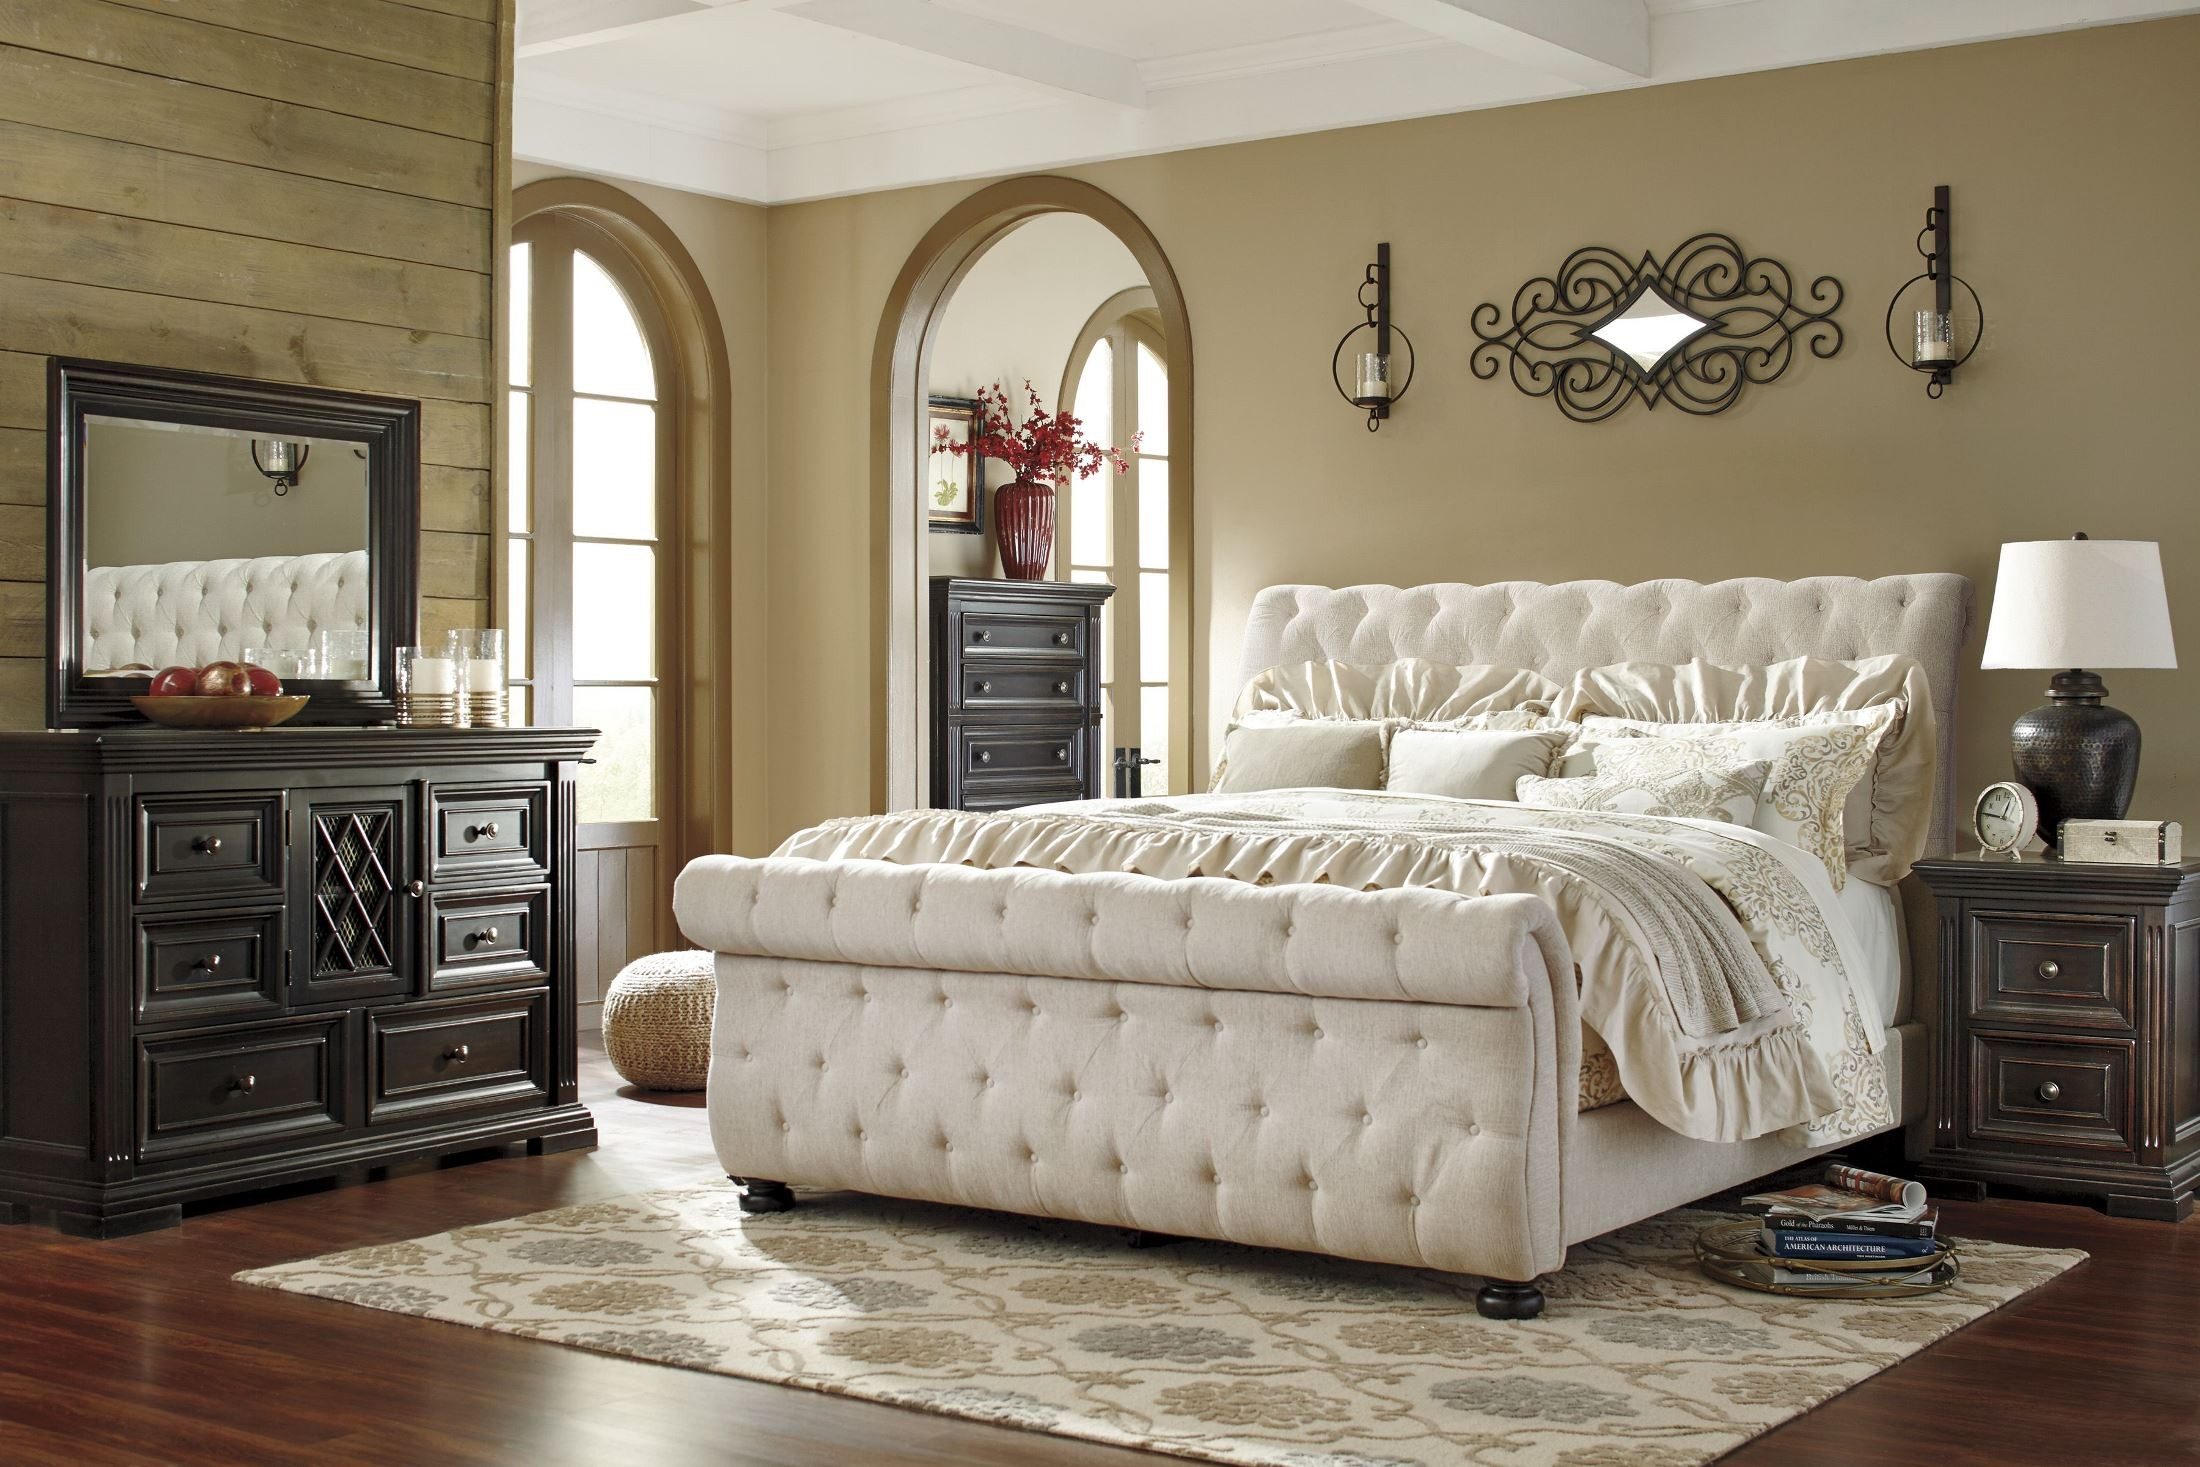 Willenburg Linen Queen Upholstered Sleigh Bed B643 77 74